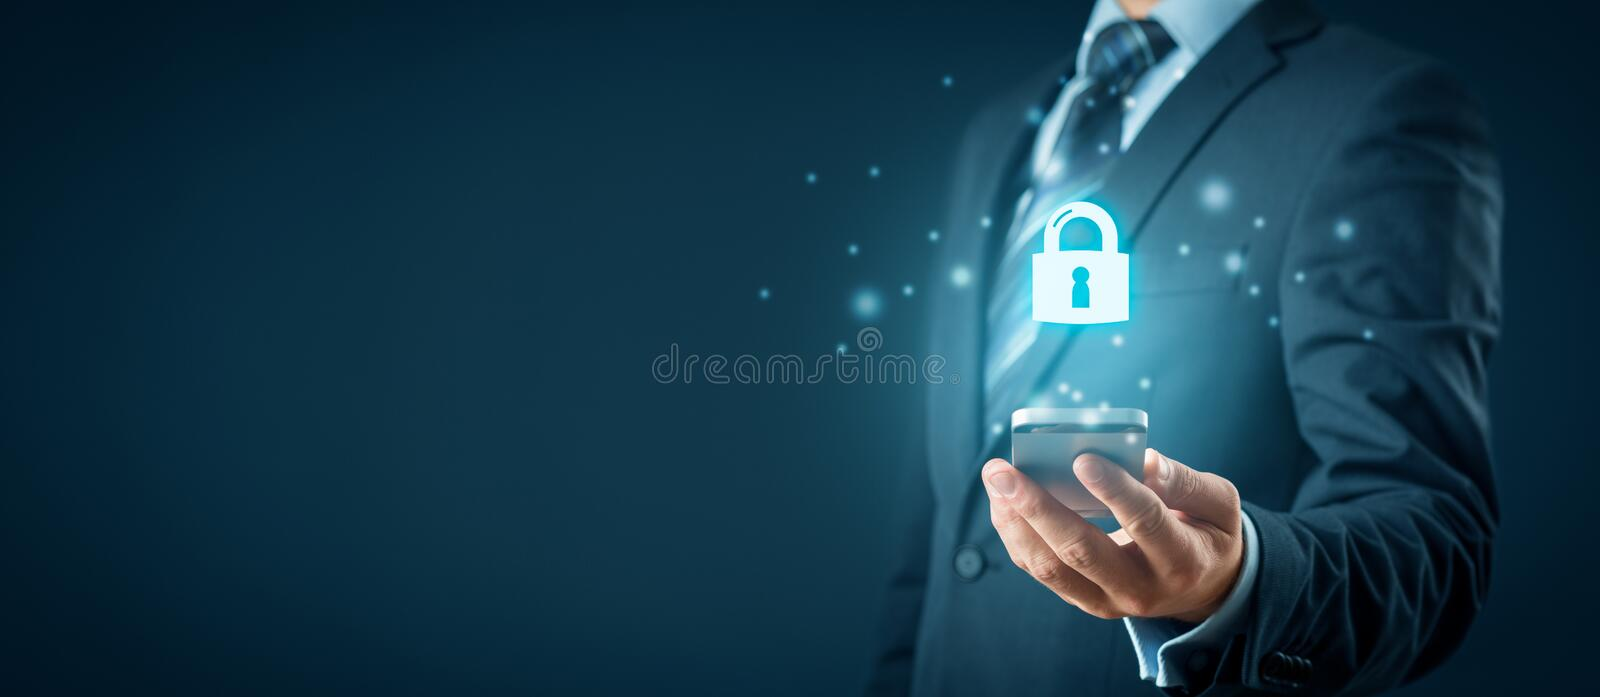 Smart phone security concept with padlock icon royalty free stock image